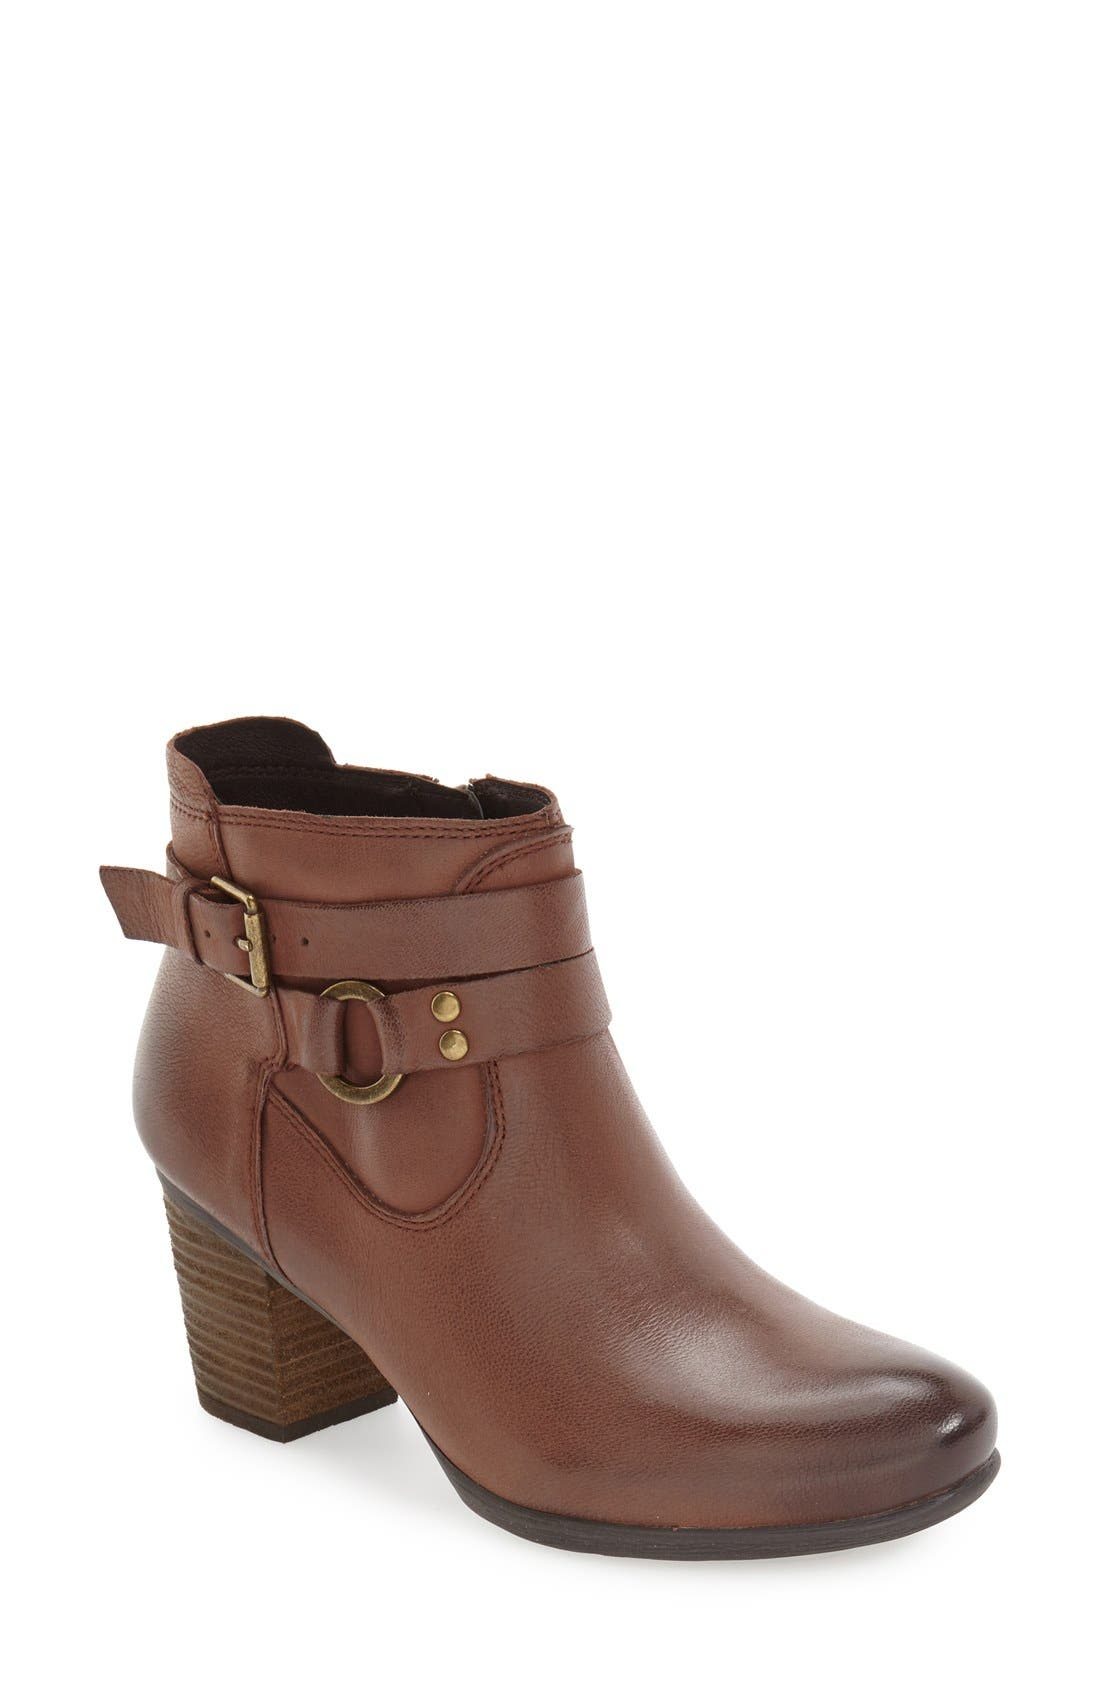 Alternate Image 1 Selected - Josef Seibel 'Britney 50' Ankle Strap Bootie (Women)